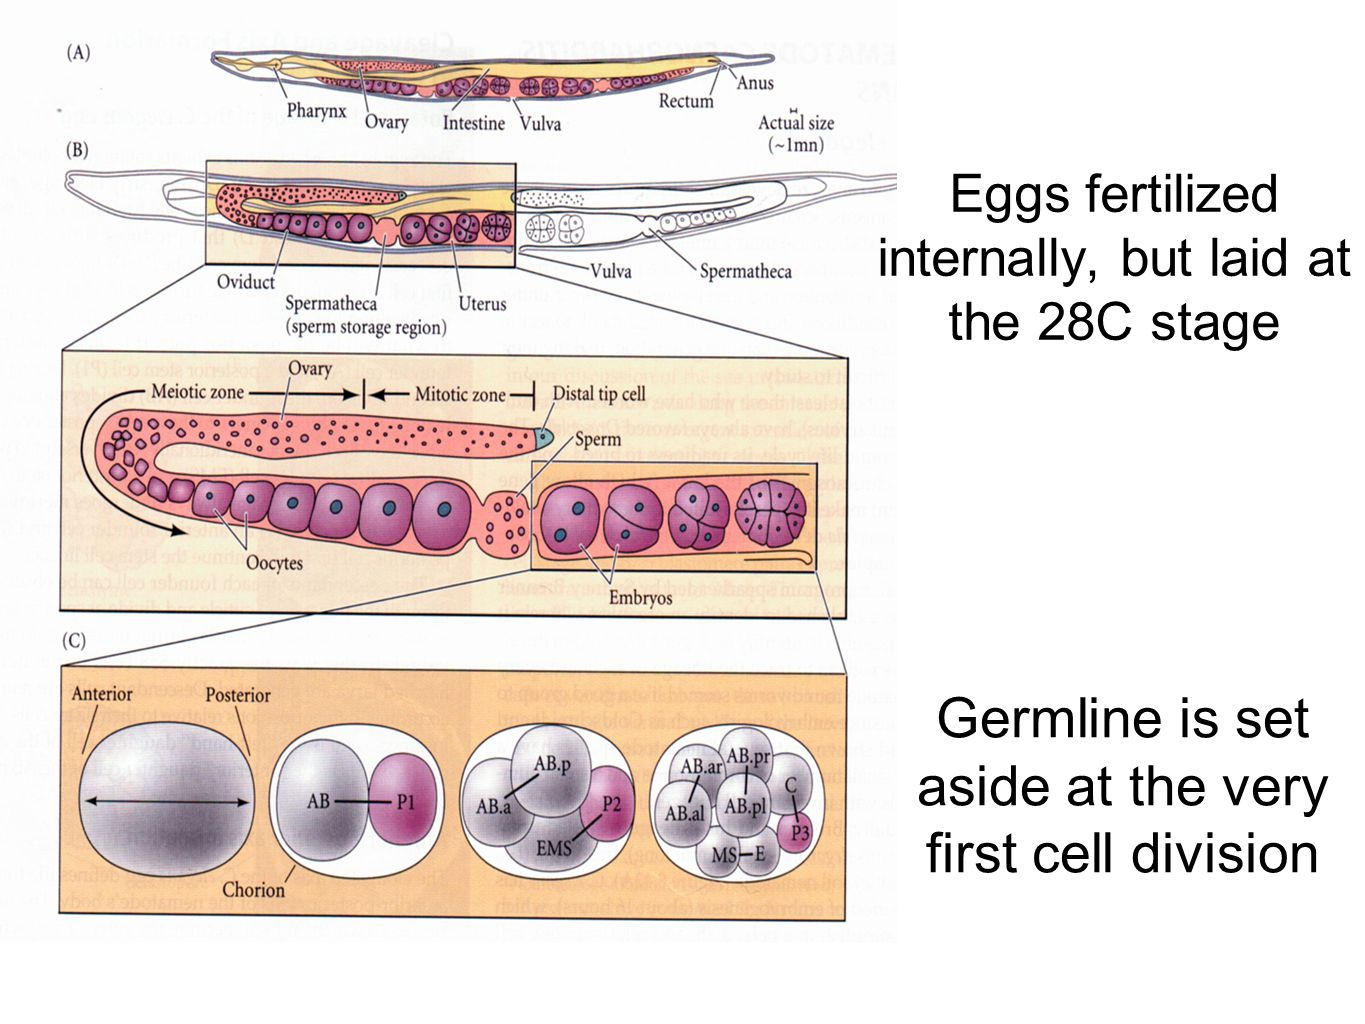 Eggs fertilized internally, but laid at the 28C stage